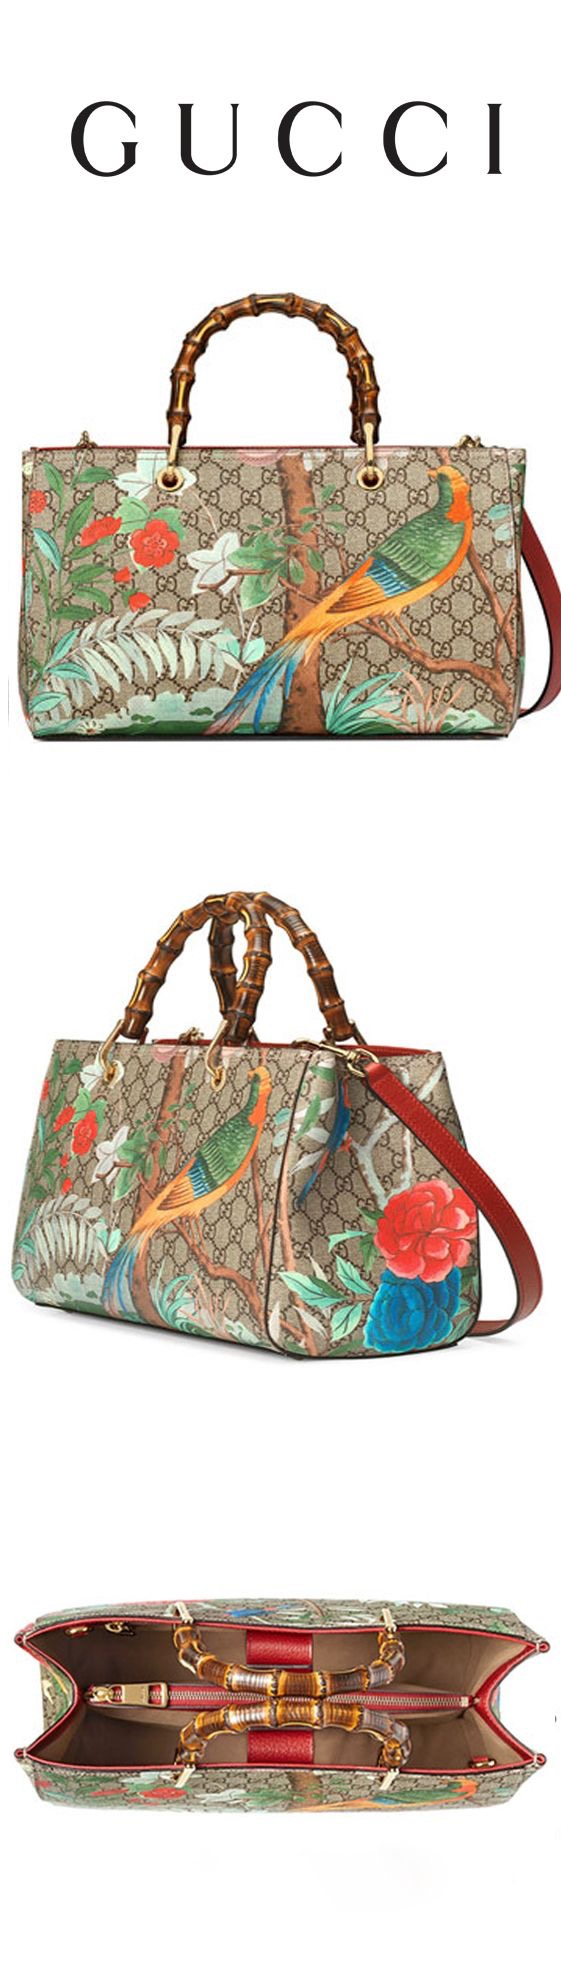 Bamboo di Gucci Handbags